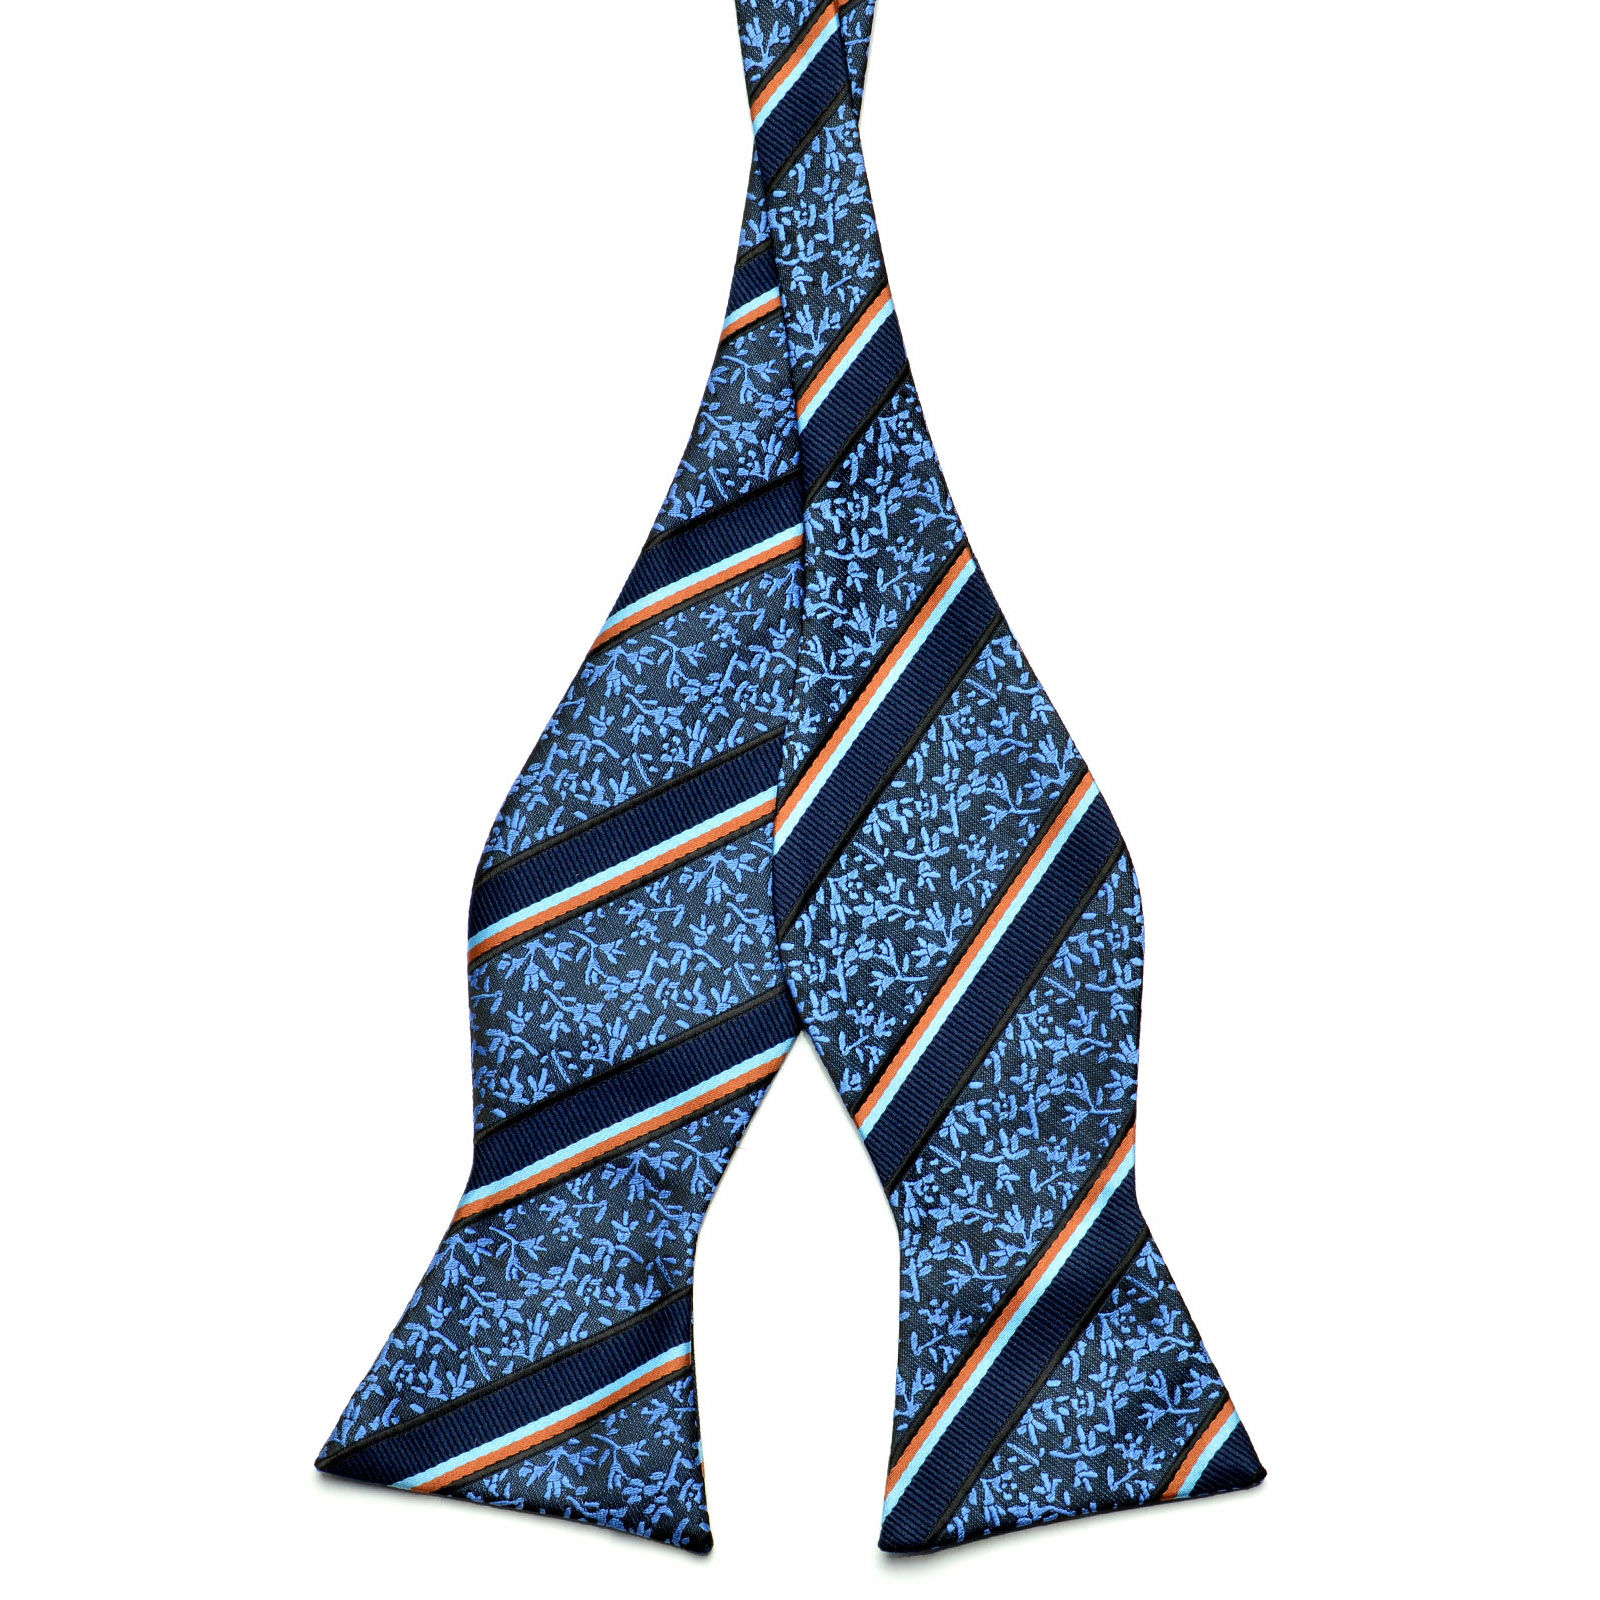 Blue Retro Patterned Bow Tie Trendhim yW2mAX